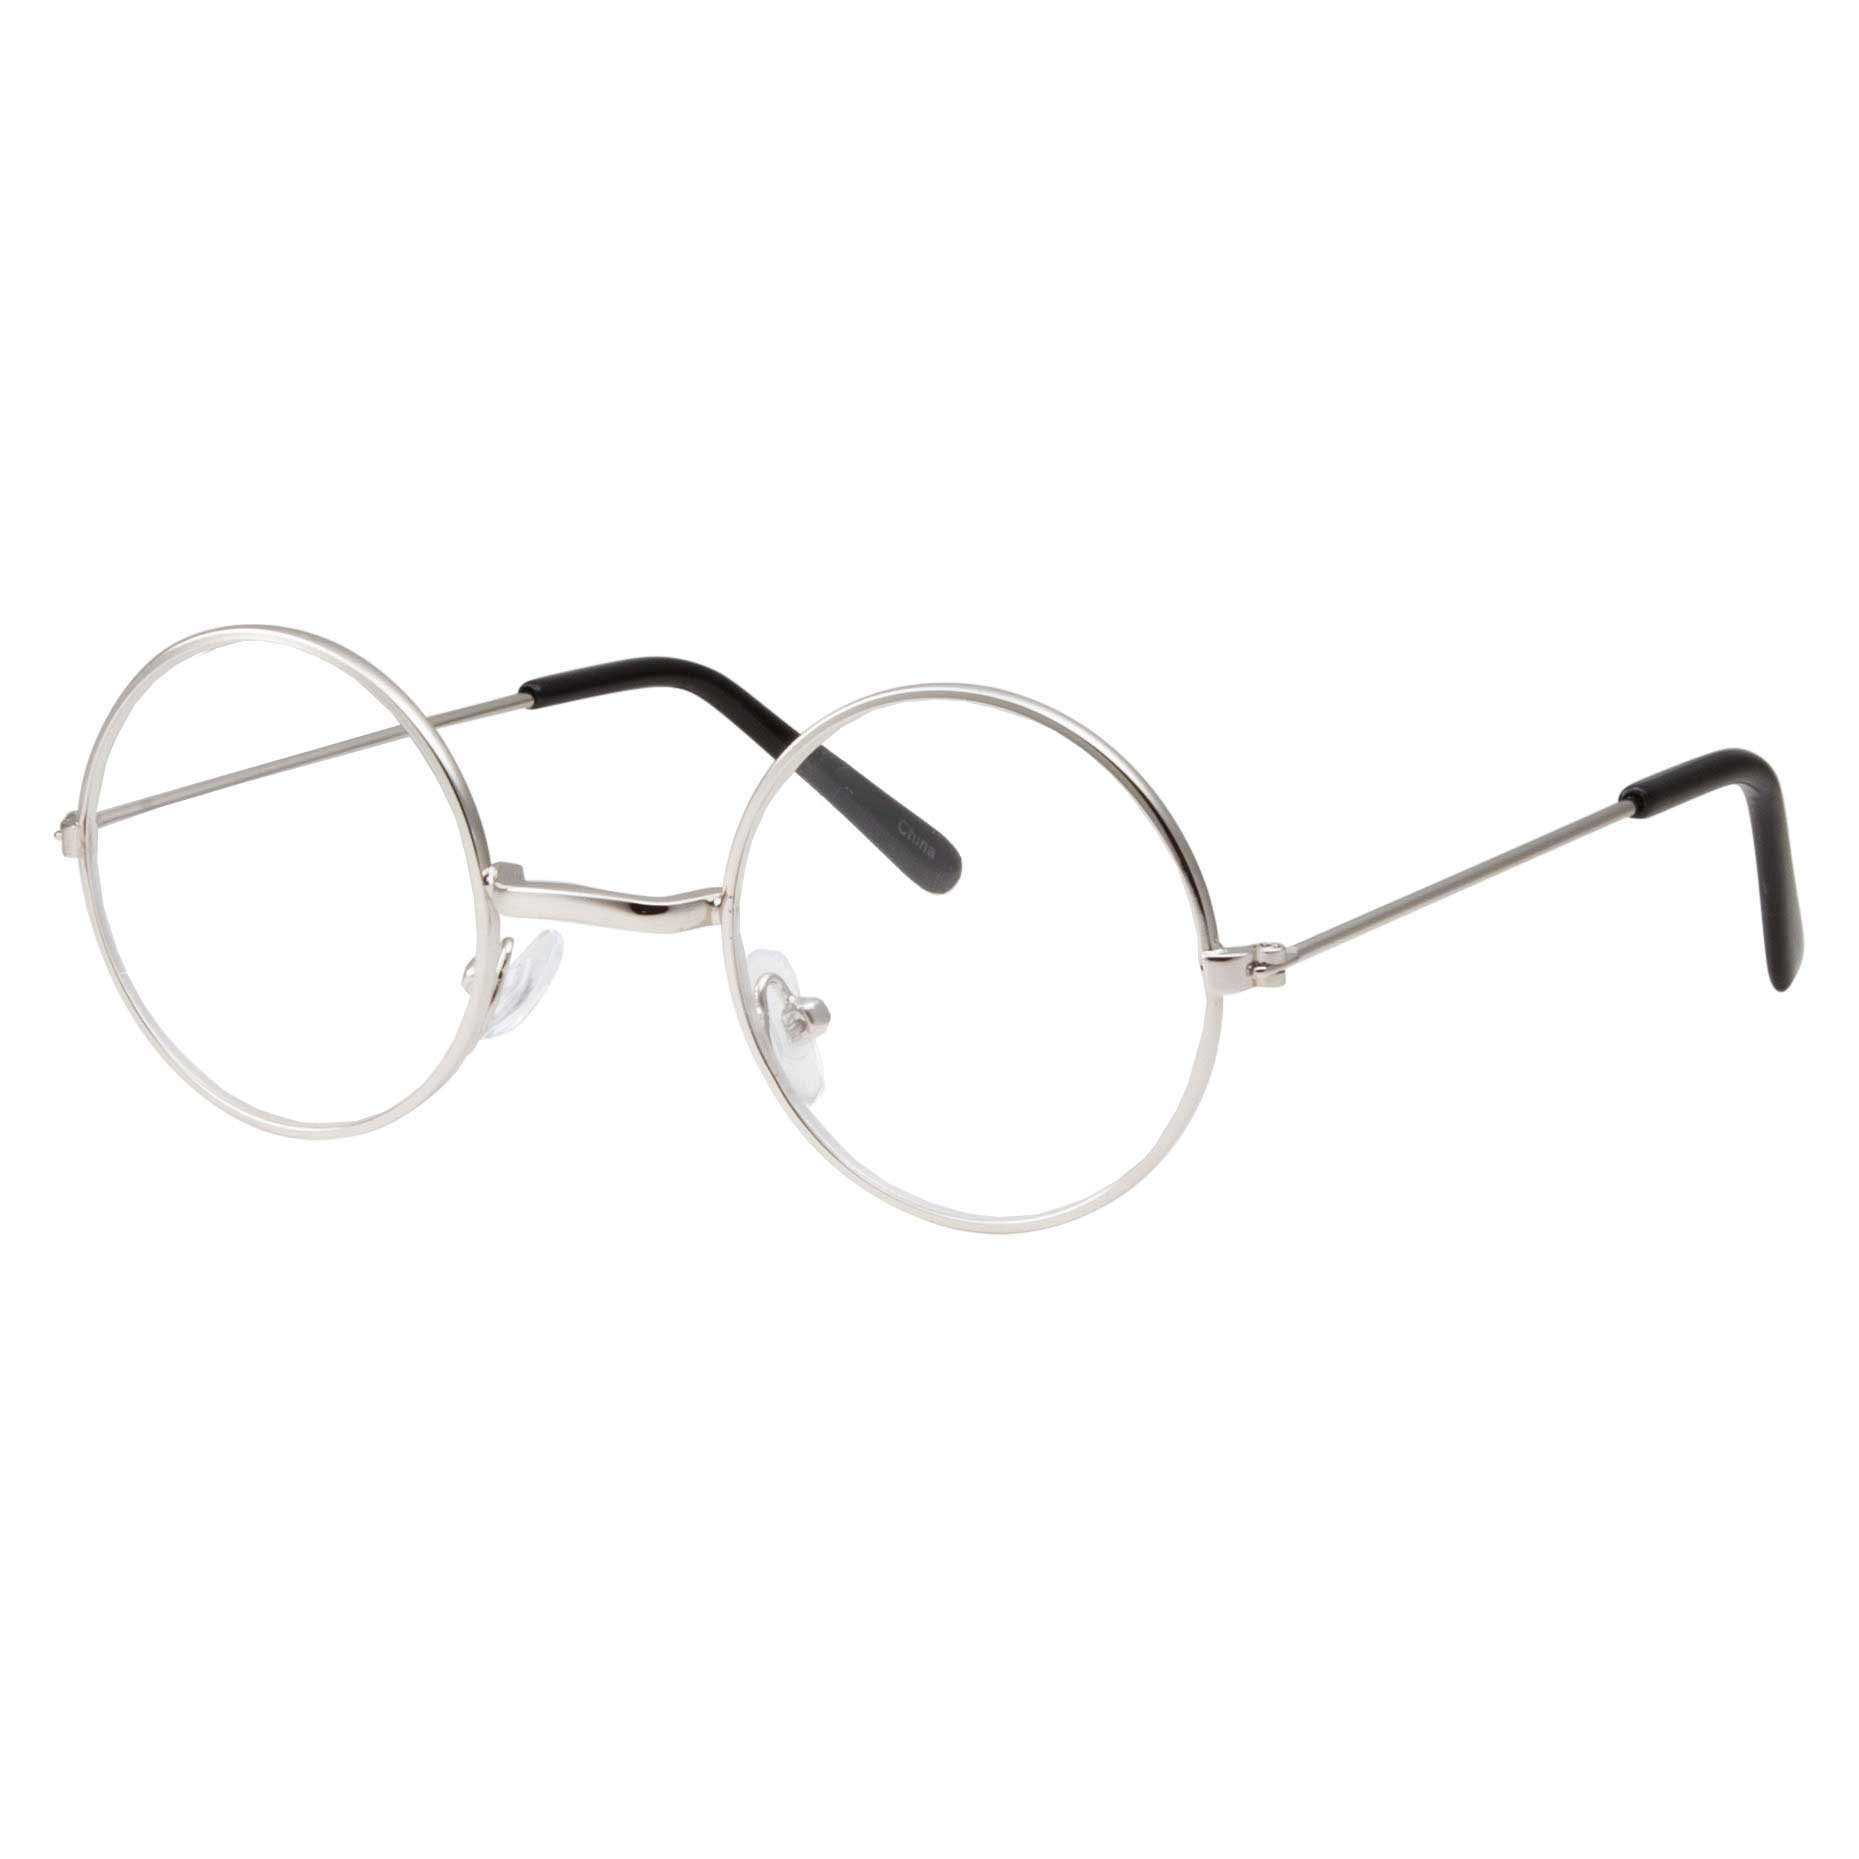 Kids Size Non-Prescription Glasses Round Circle